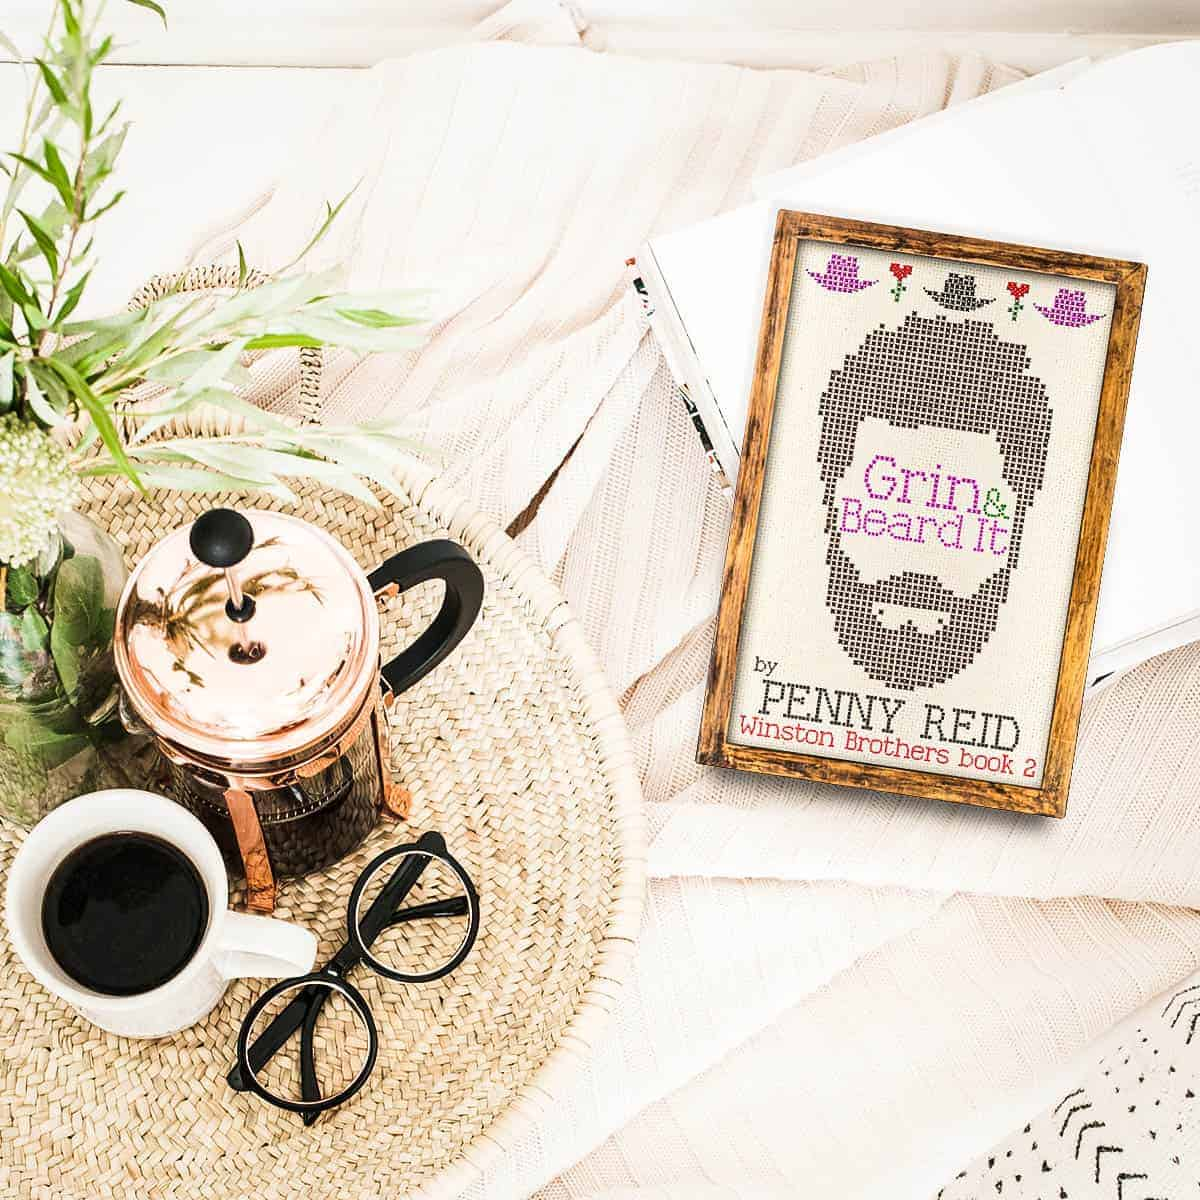 Grin and Beard It by Penny Reid is a sweet, slow-burning romance with a crazy cast of characters, heartwarming brotherly love, and a heartbreaking redemption story